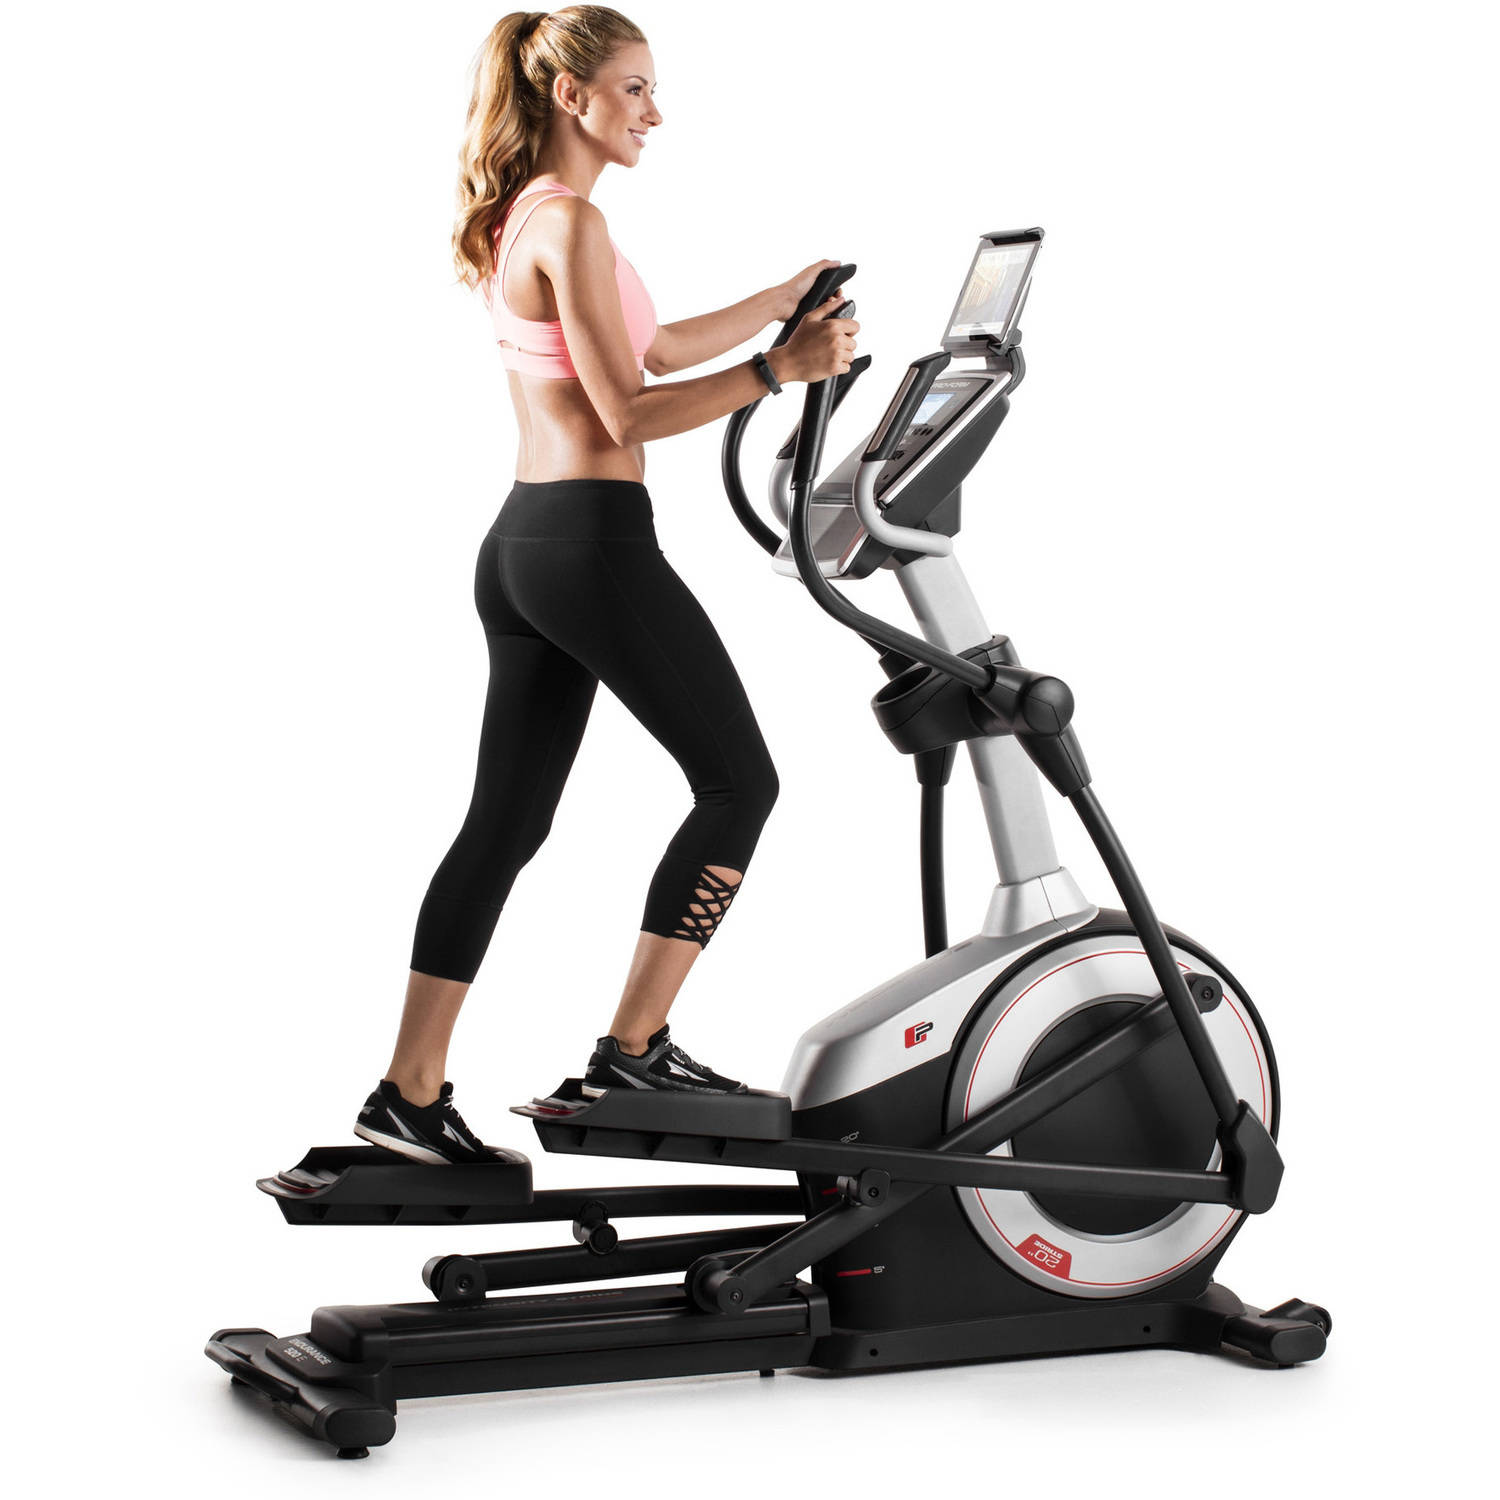 ProForm Endurance 520 E Elliptical, New Model